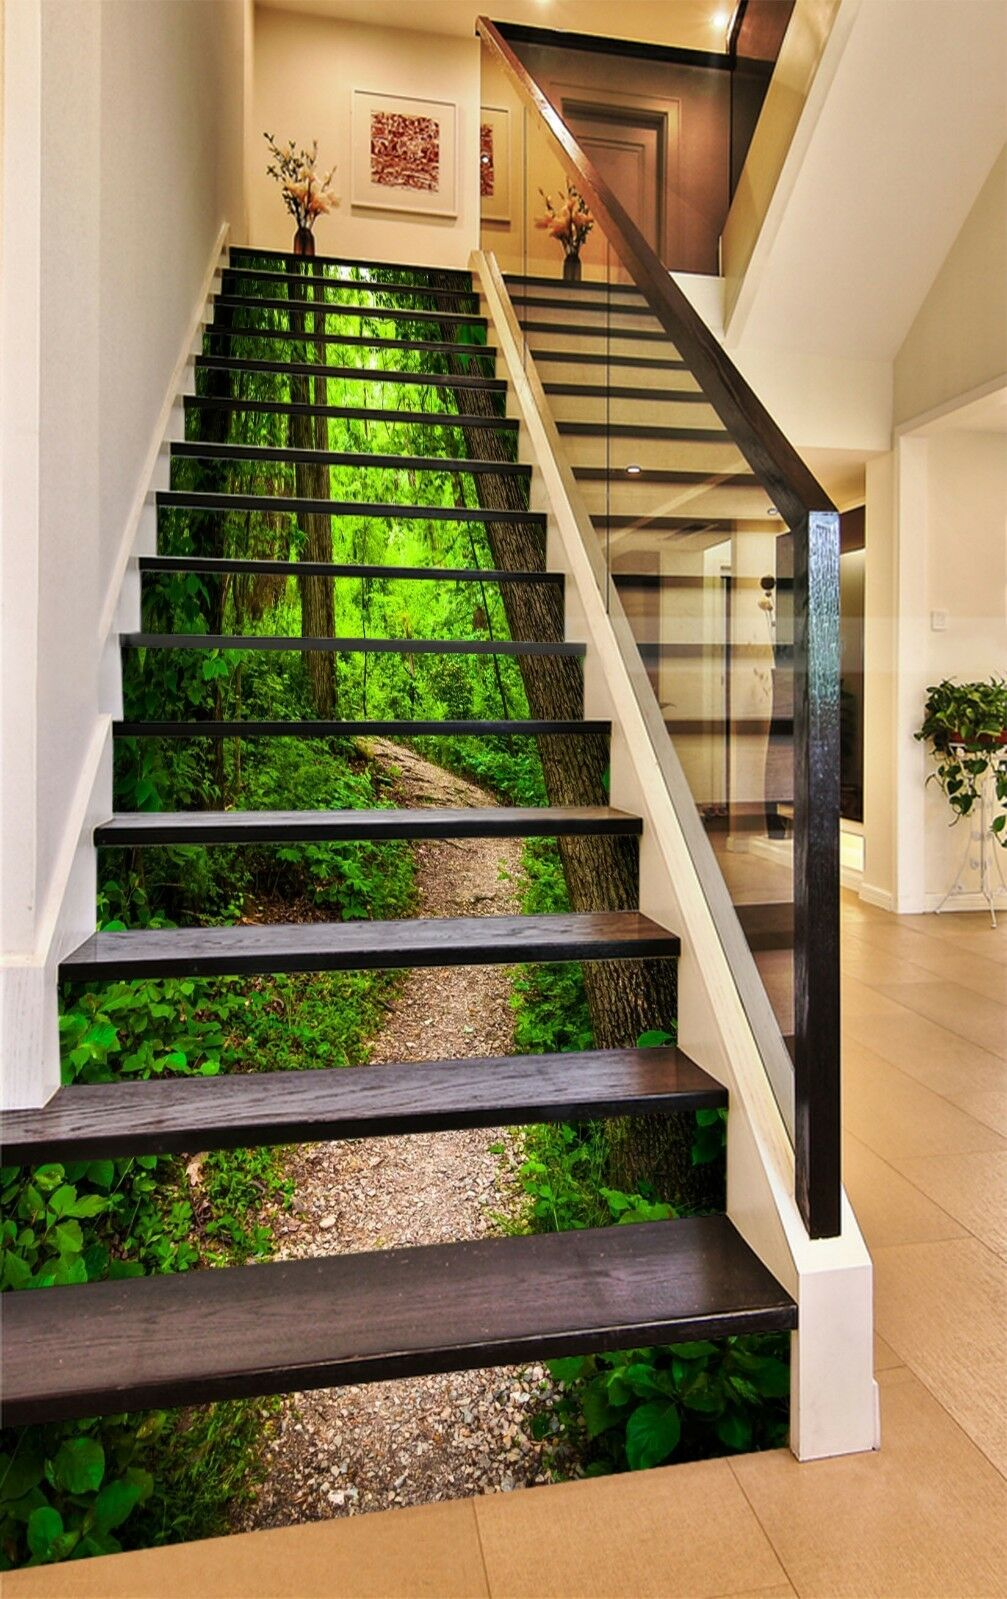 3D Forest Road 3 Stair Risers Decoration Photo Mural Vinyl Decal Wallpaper US